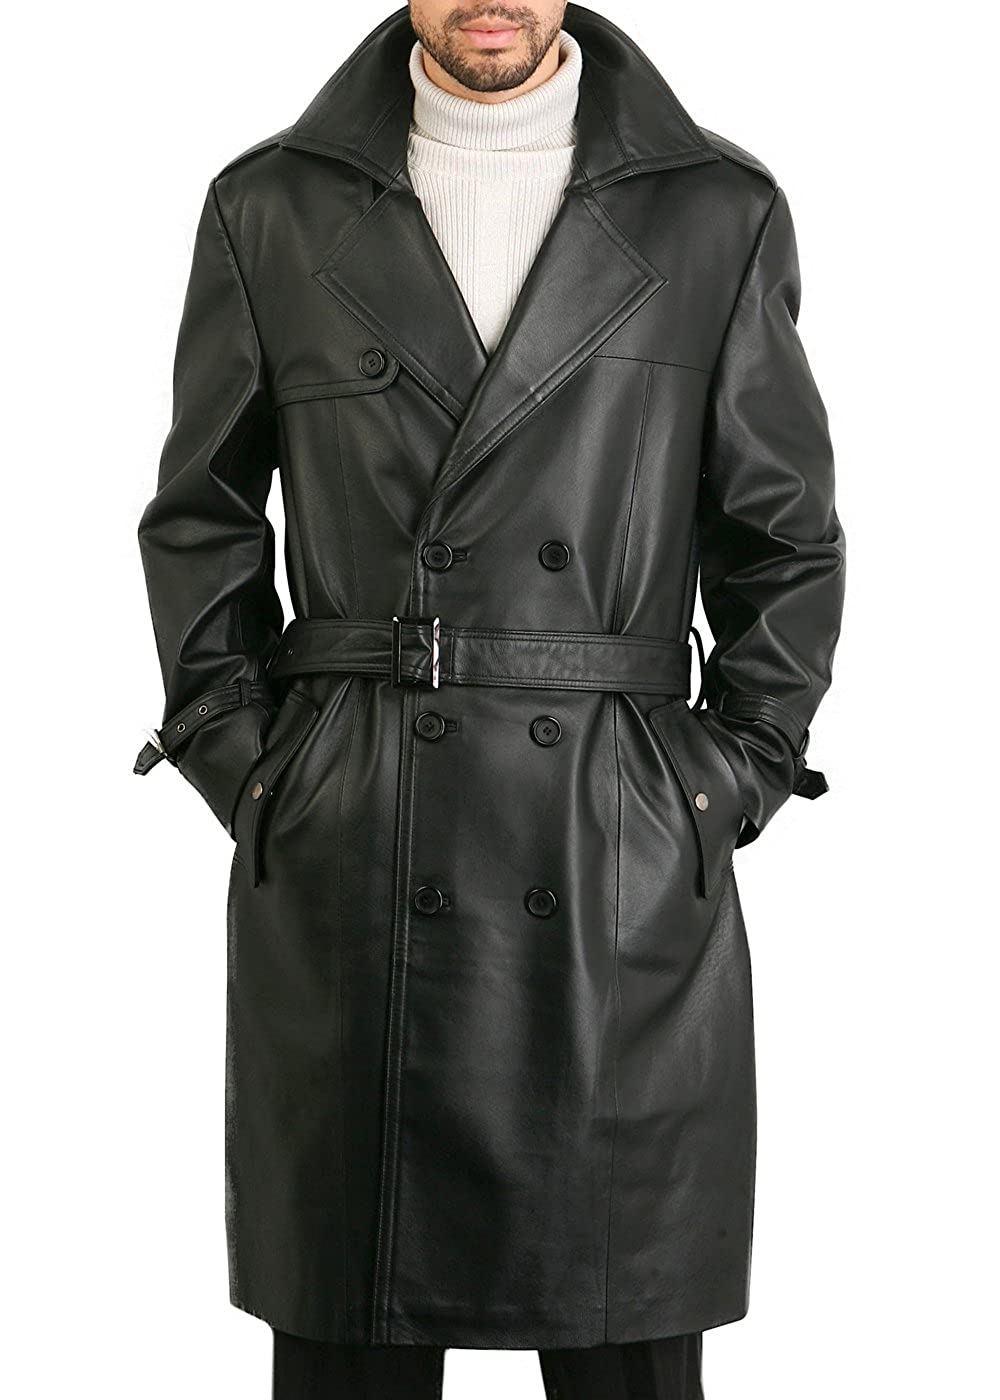 BGSD Mens Xander Classic Leather Long Trench Coat Regular and Big /& Tall and Short Sizes